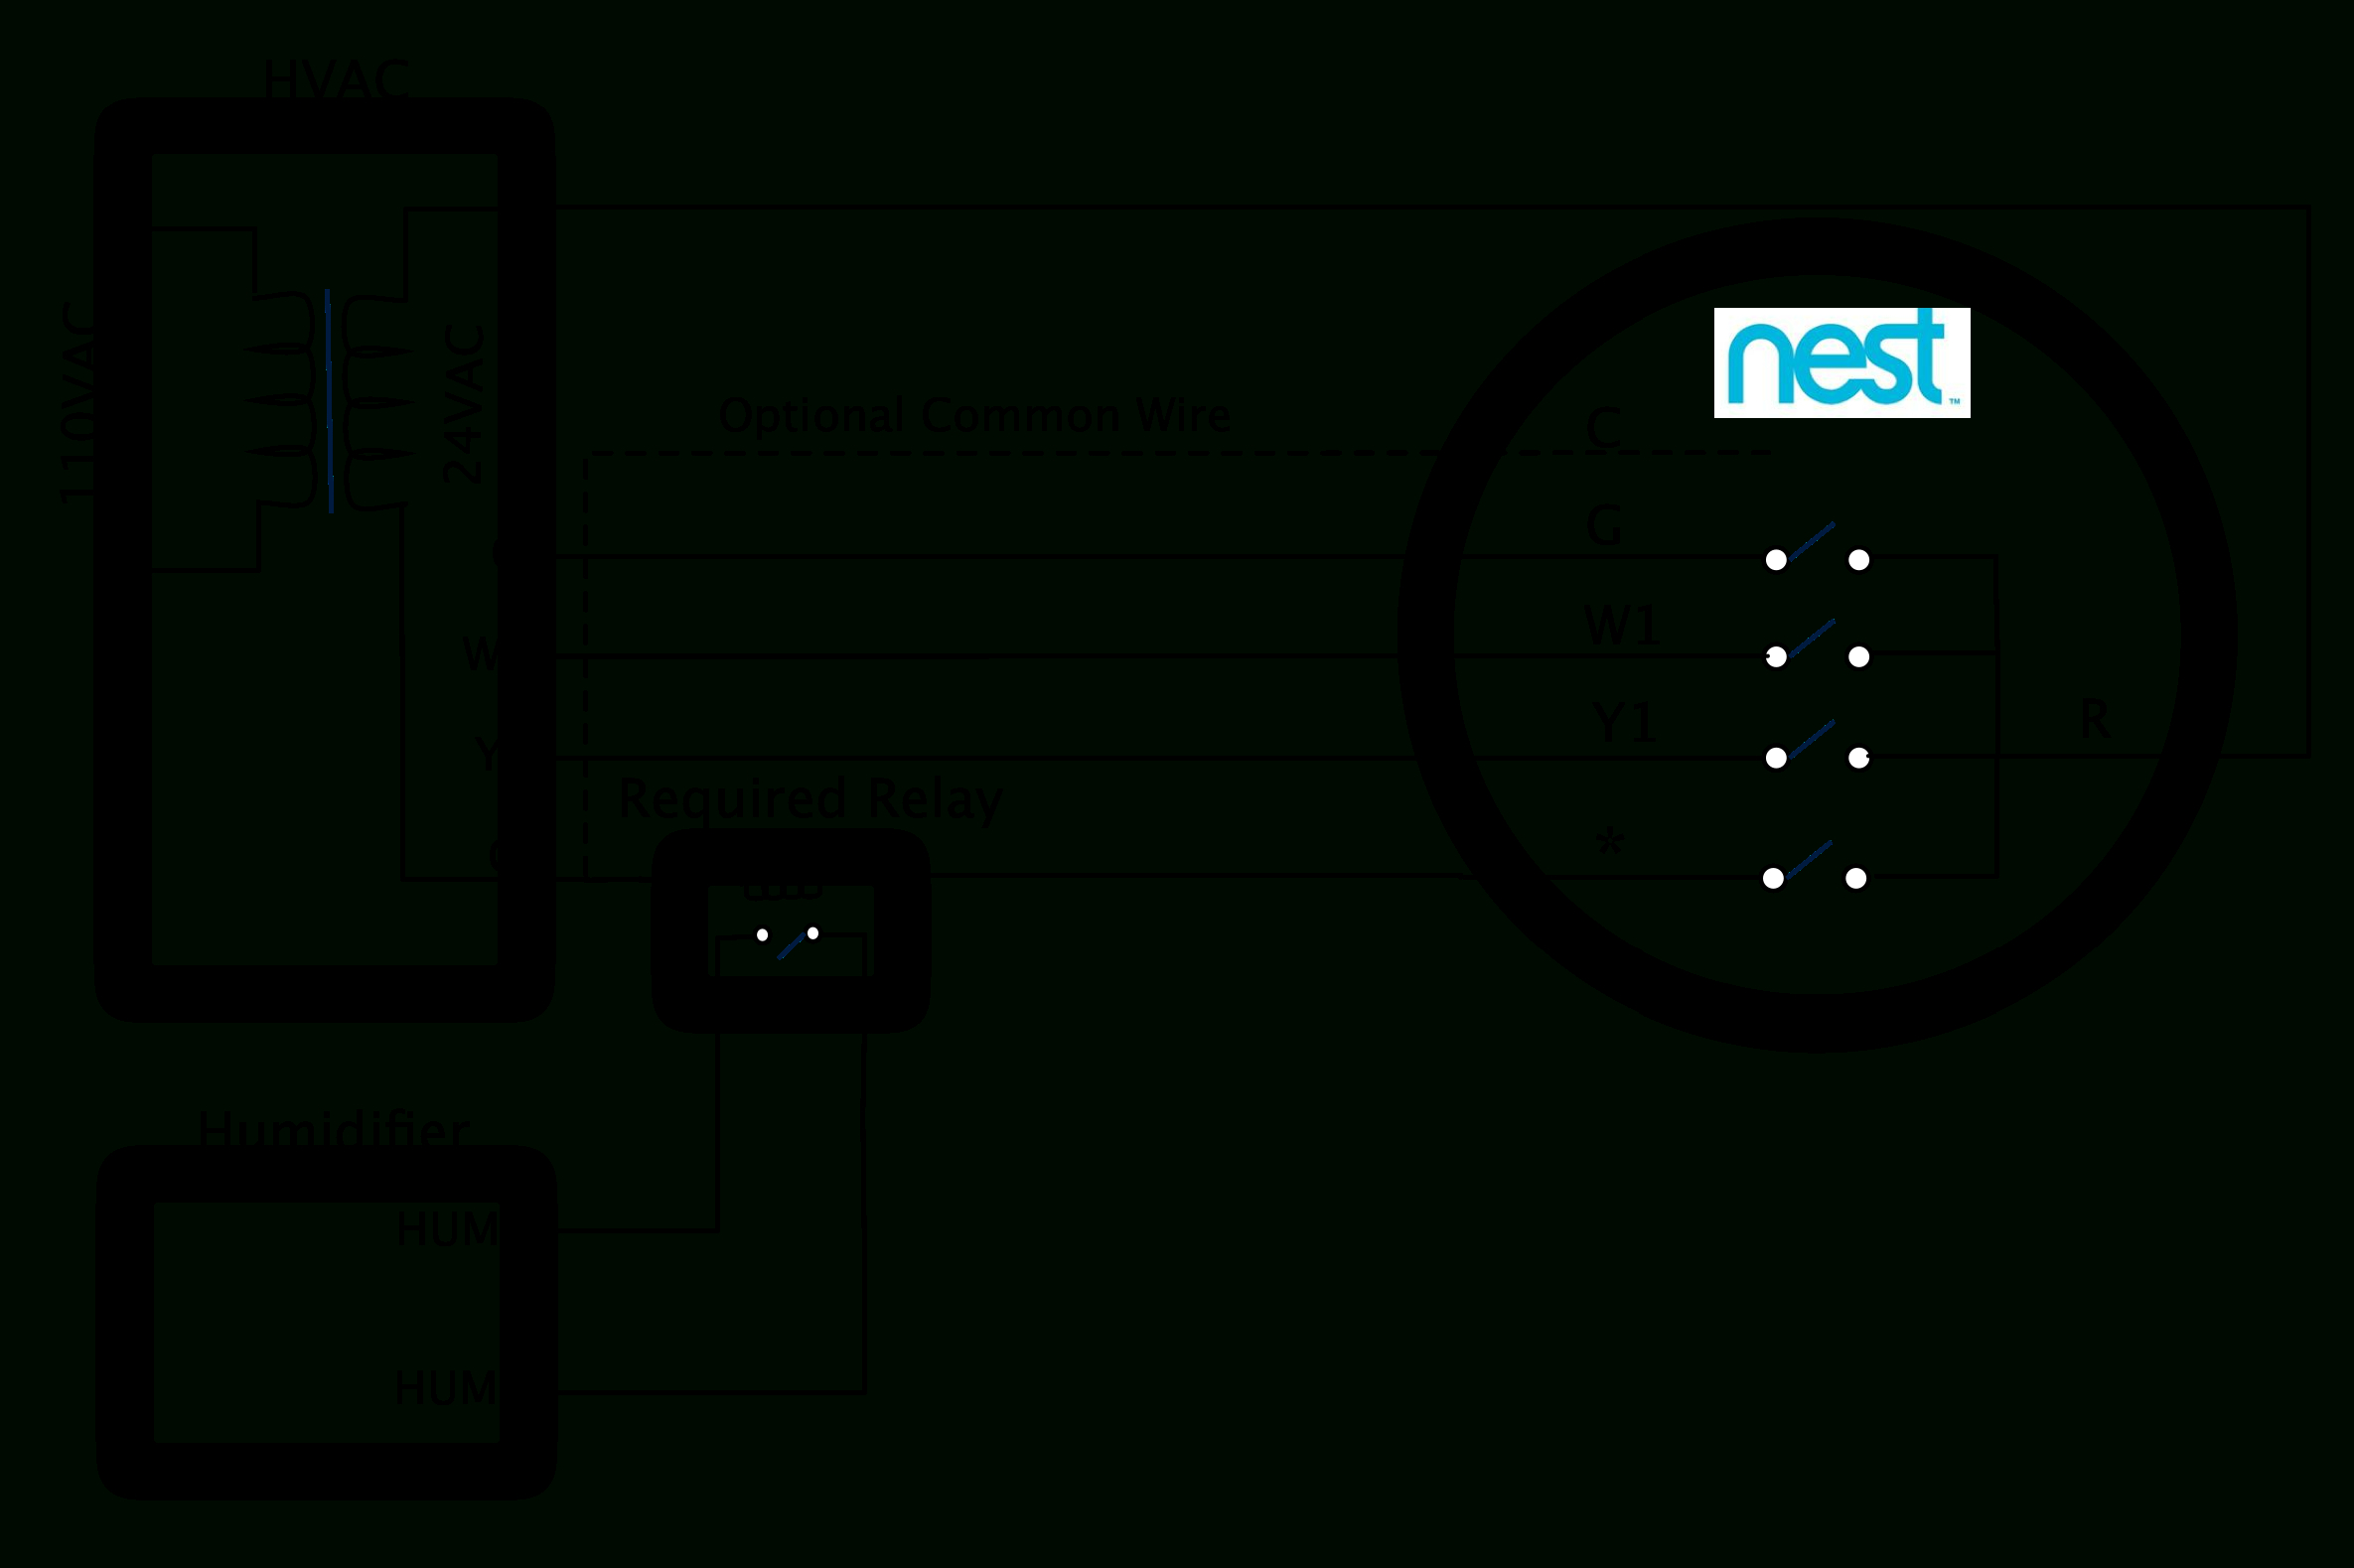 Nest Room Thermostat Wiring Diagram | Wiring Diagram - Nest Wiring Diagram Combi